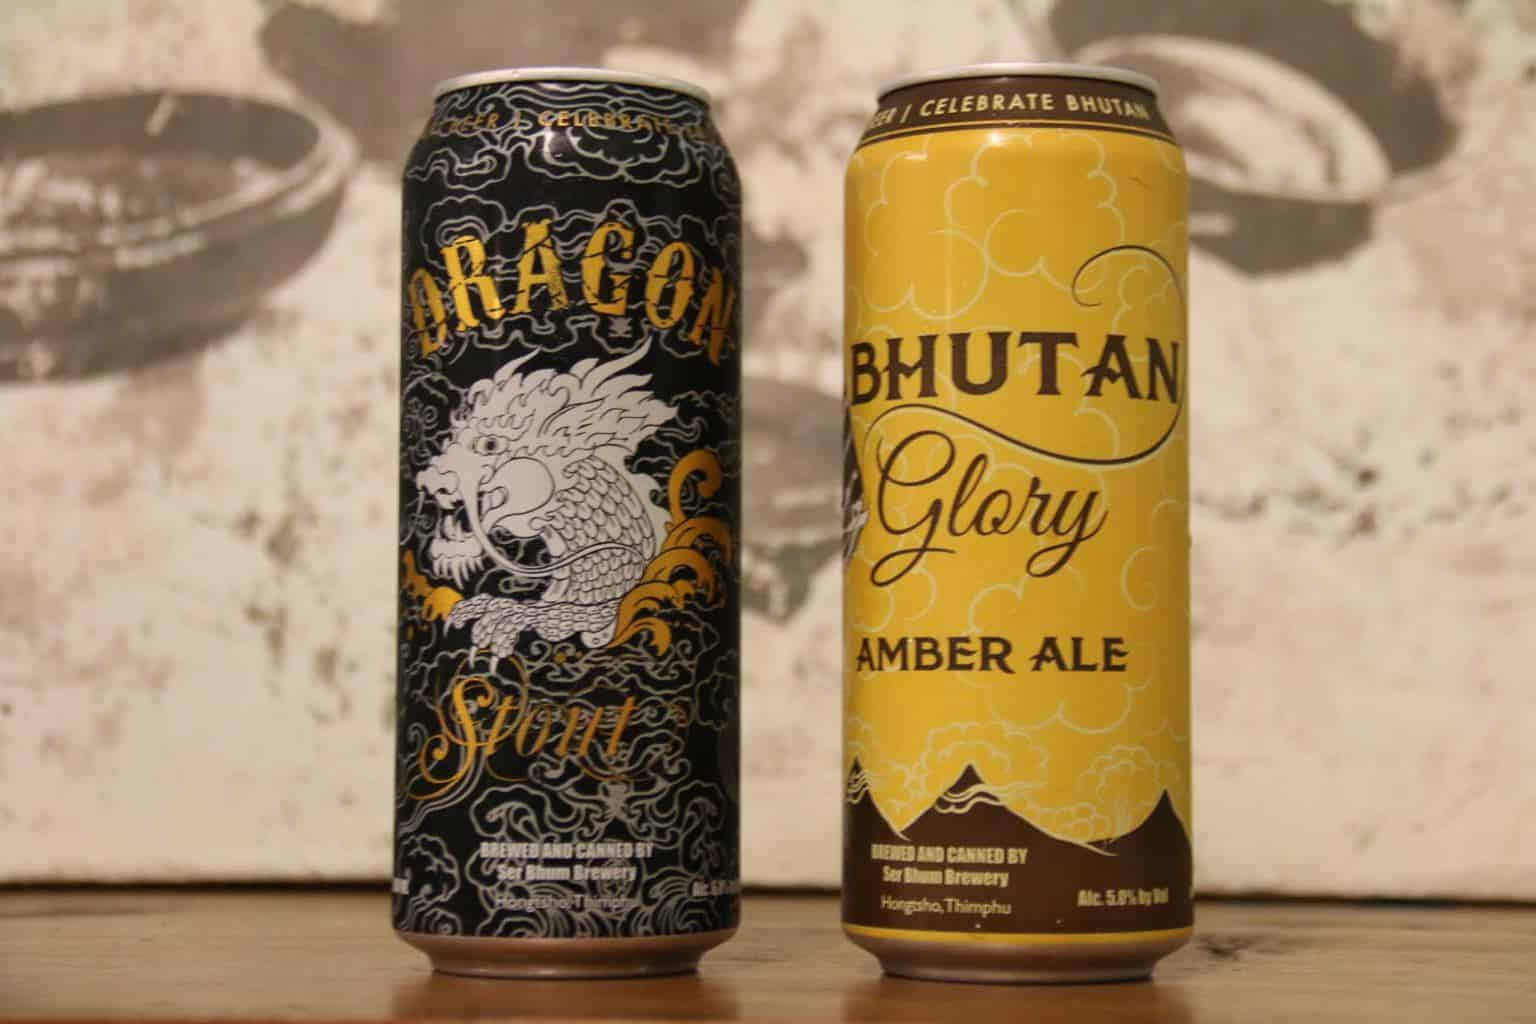 Bhutan craft beer guide